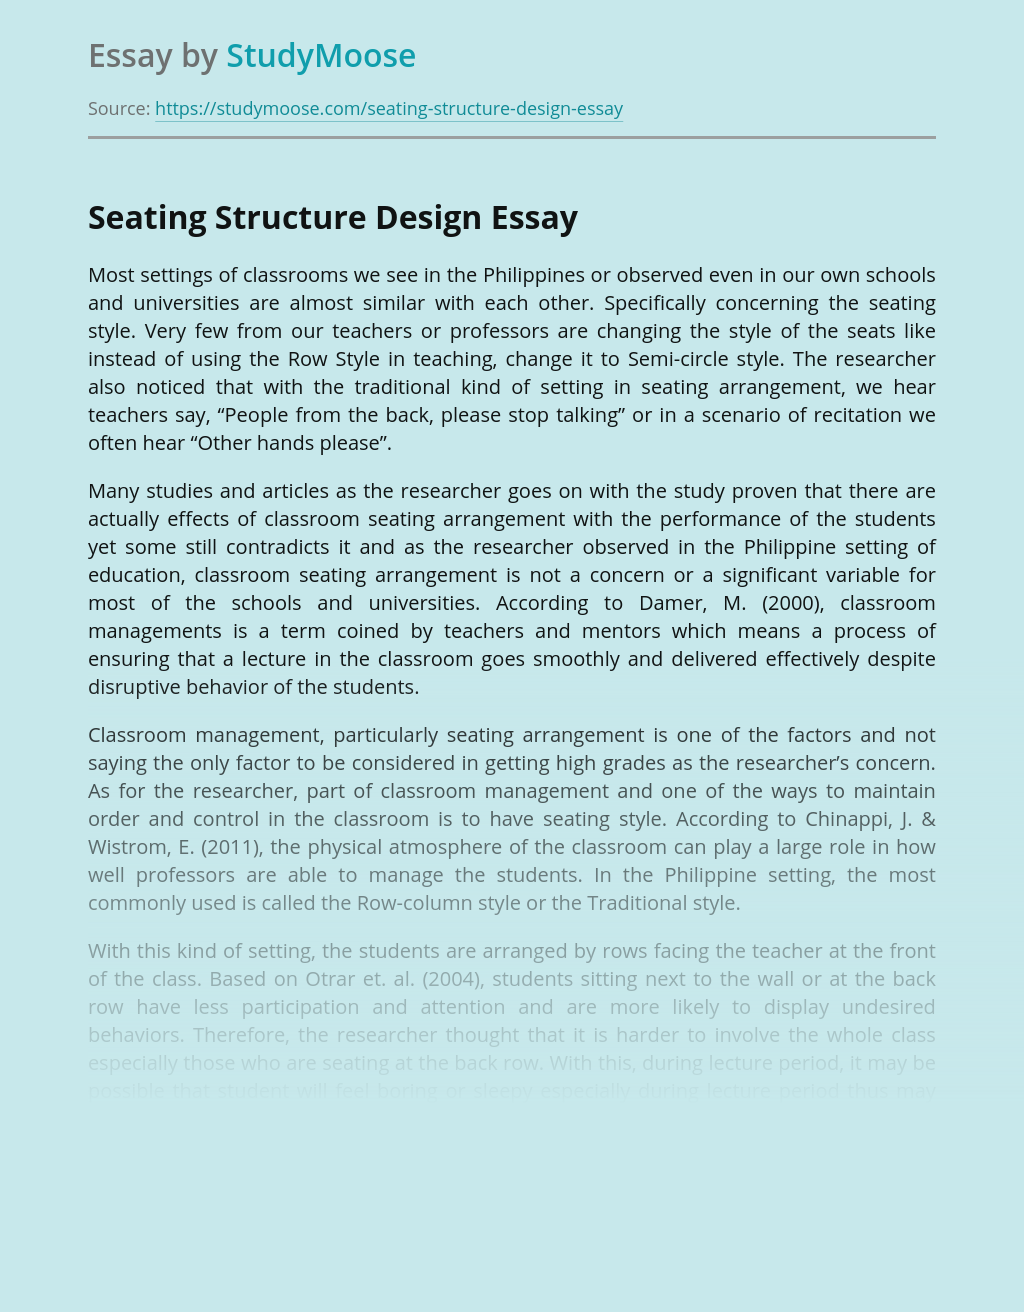 Seating Structure Design